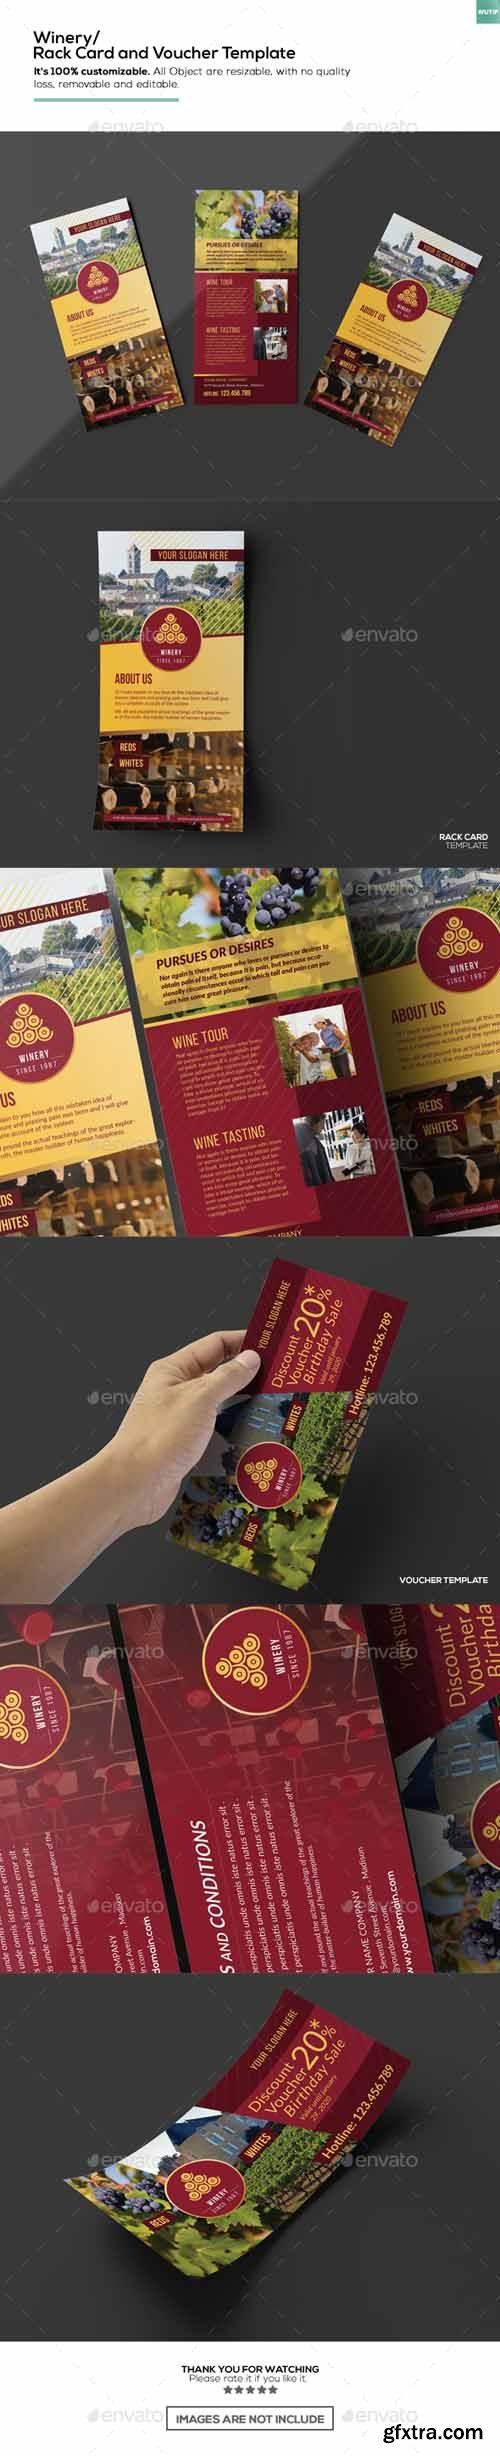 GR - Winery/ Rack Card and Voucher Template 15911229